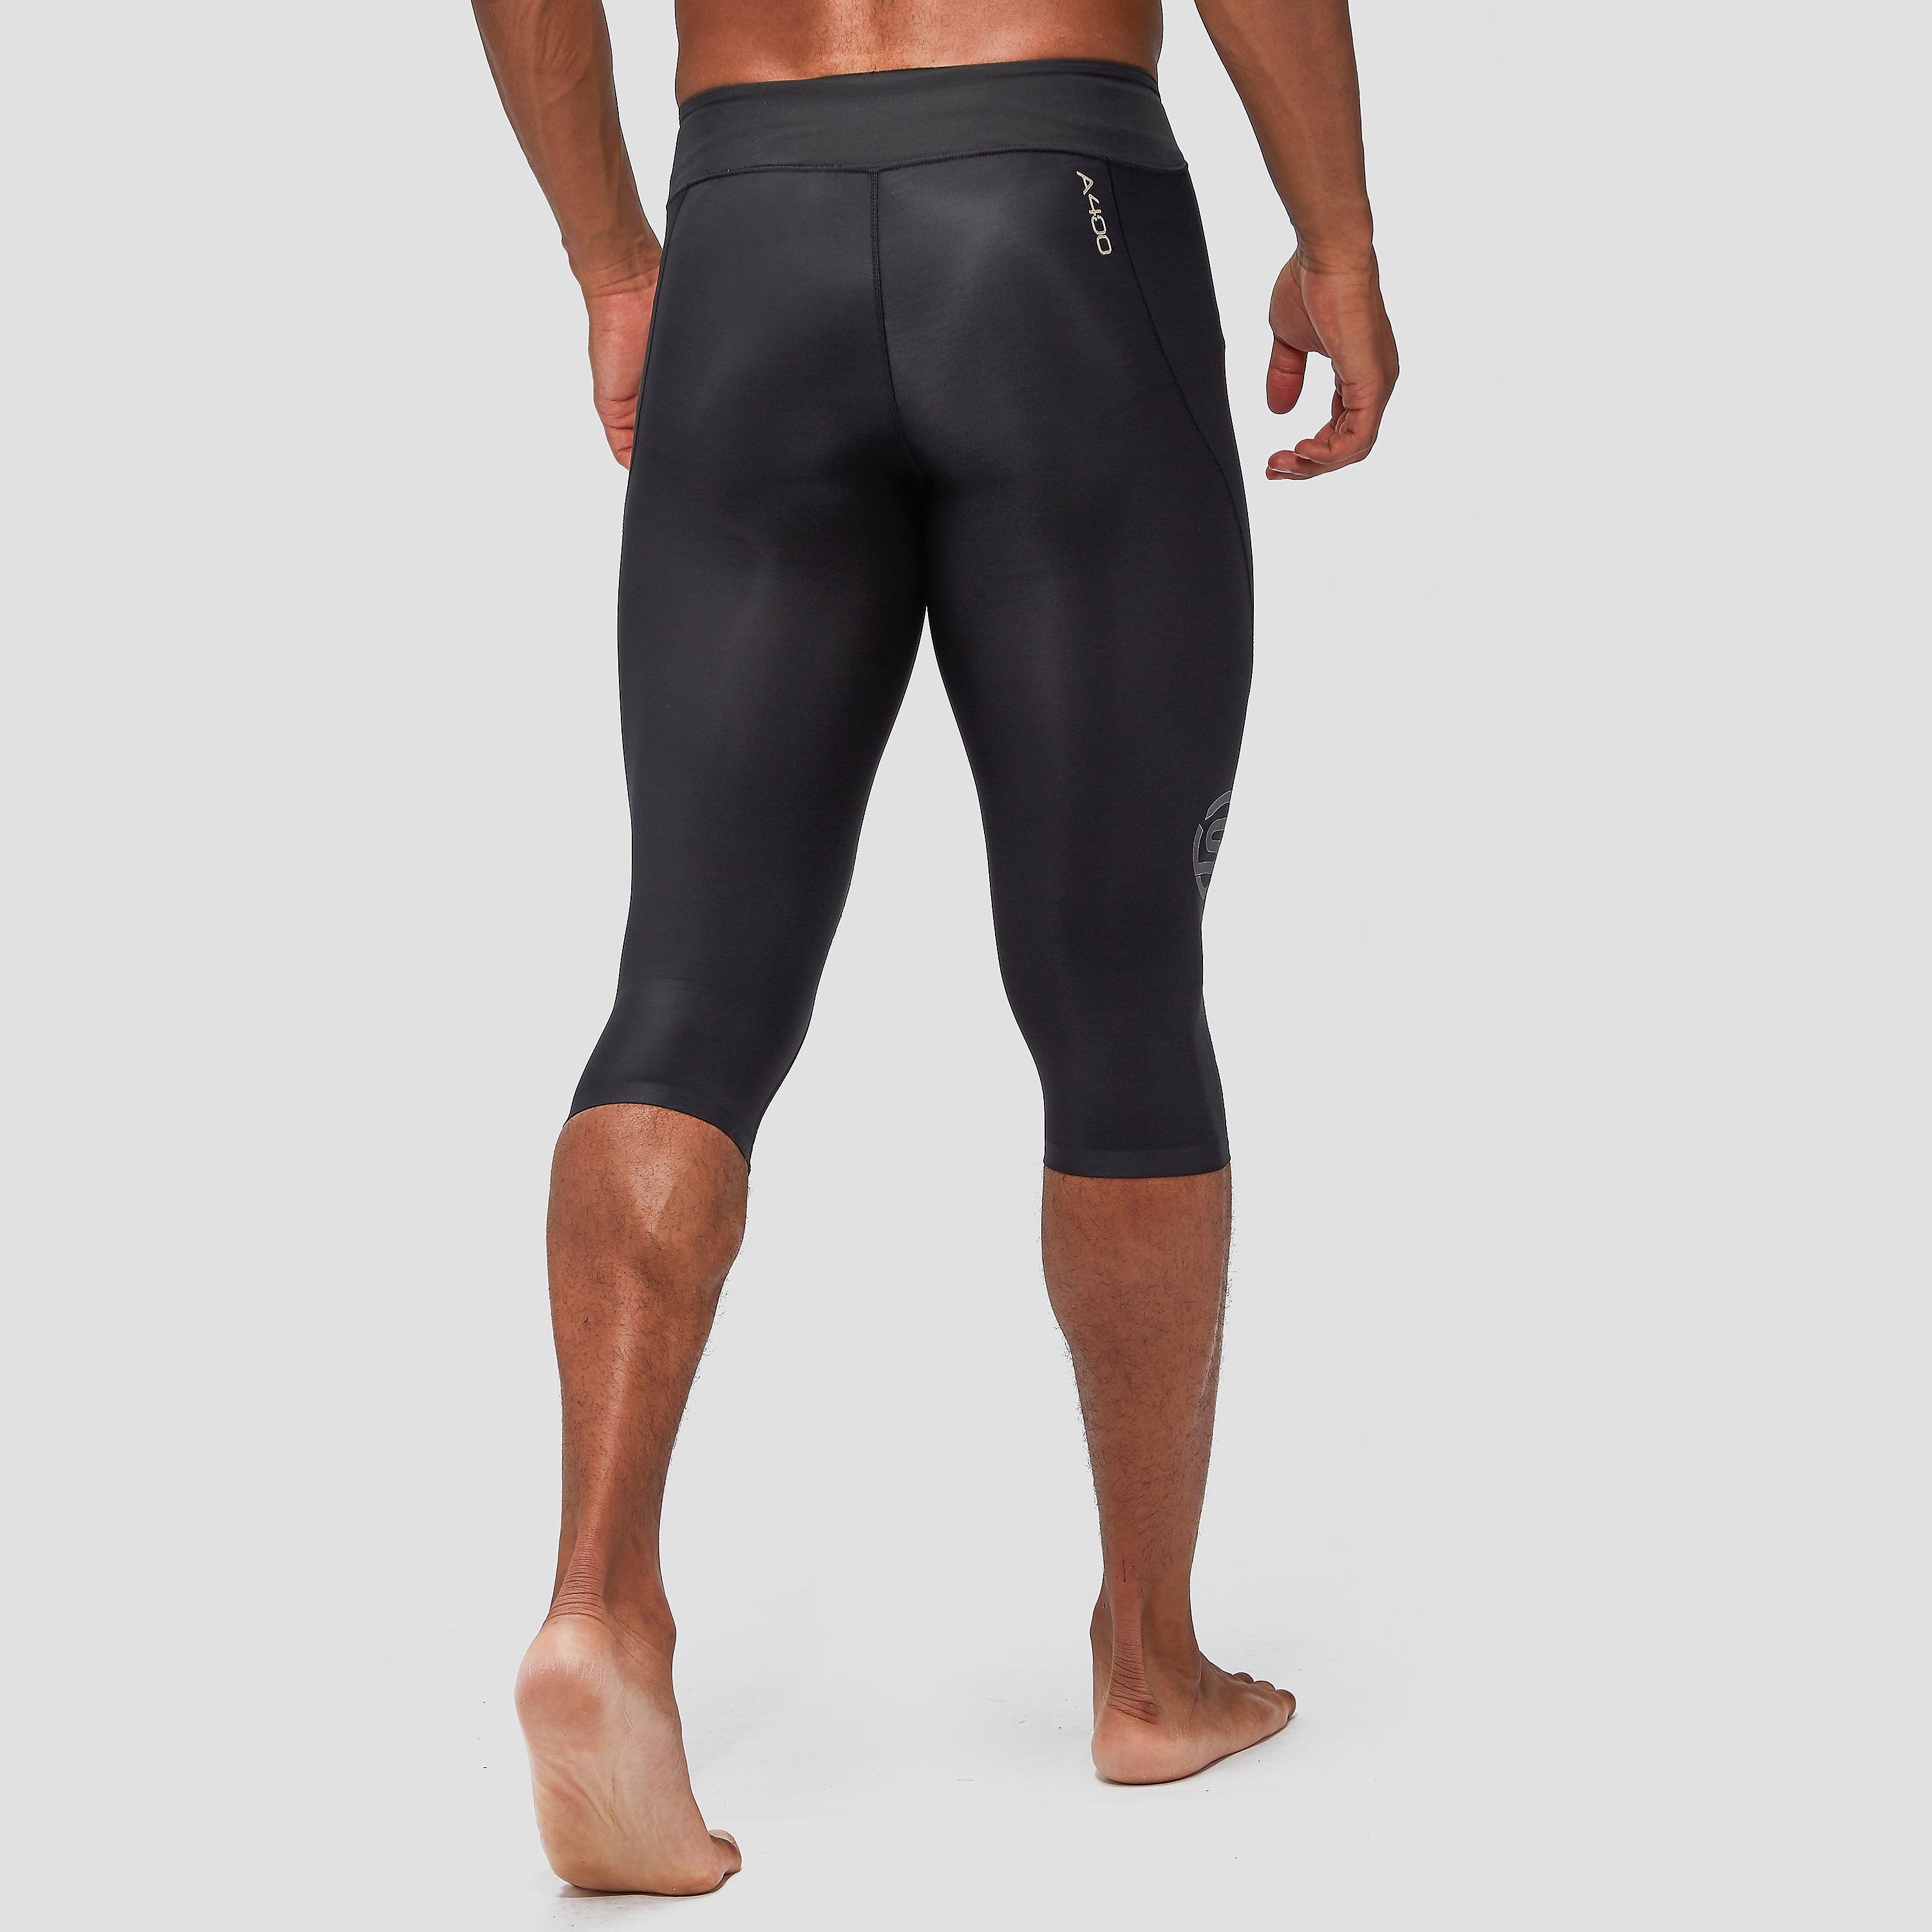 Skins A400 Men's ¾ Tights